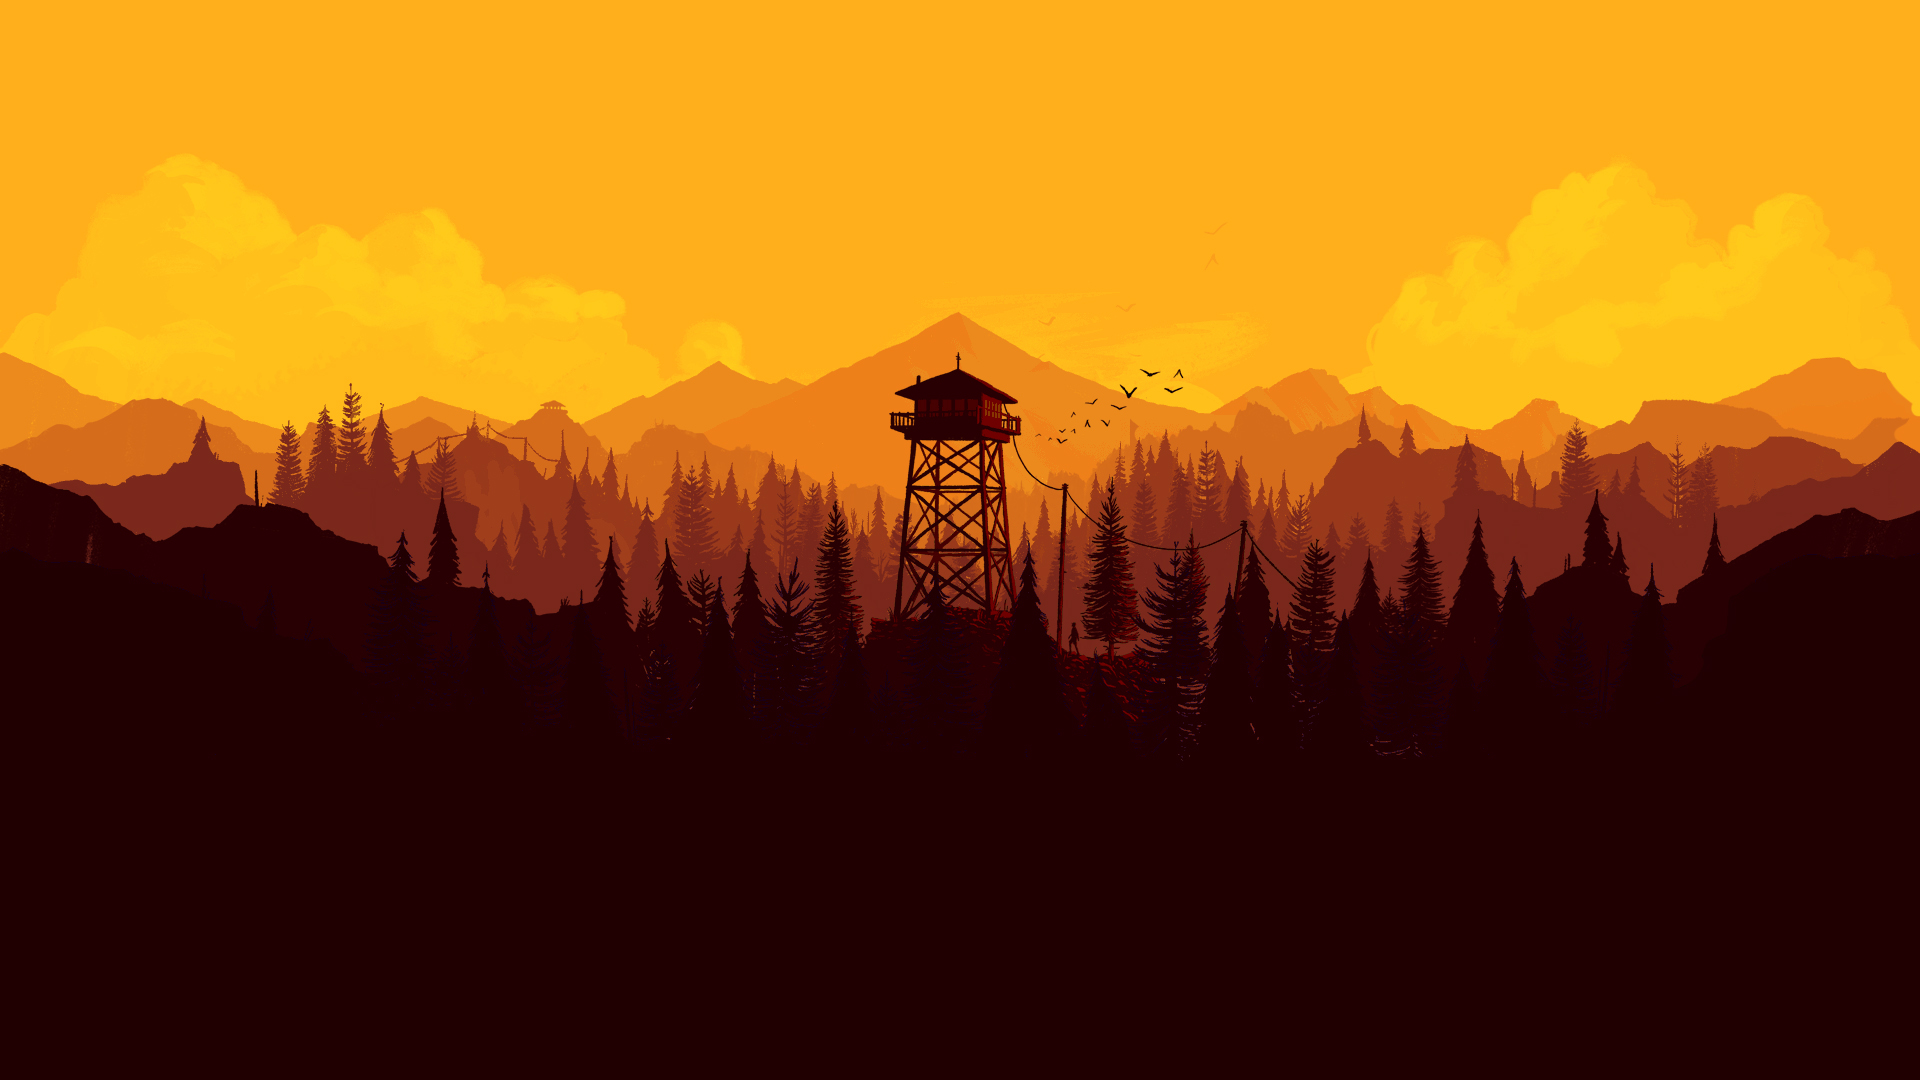 Firewatch Wallpaper For Iphone And Desktop 1920x1080